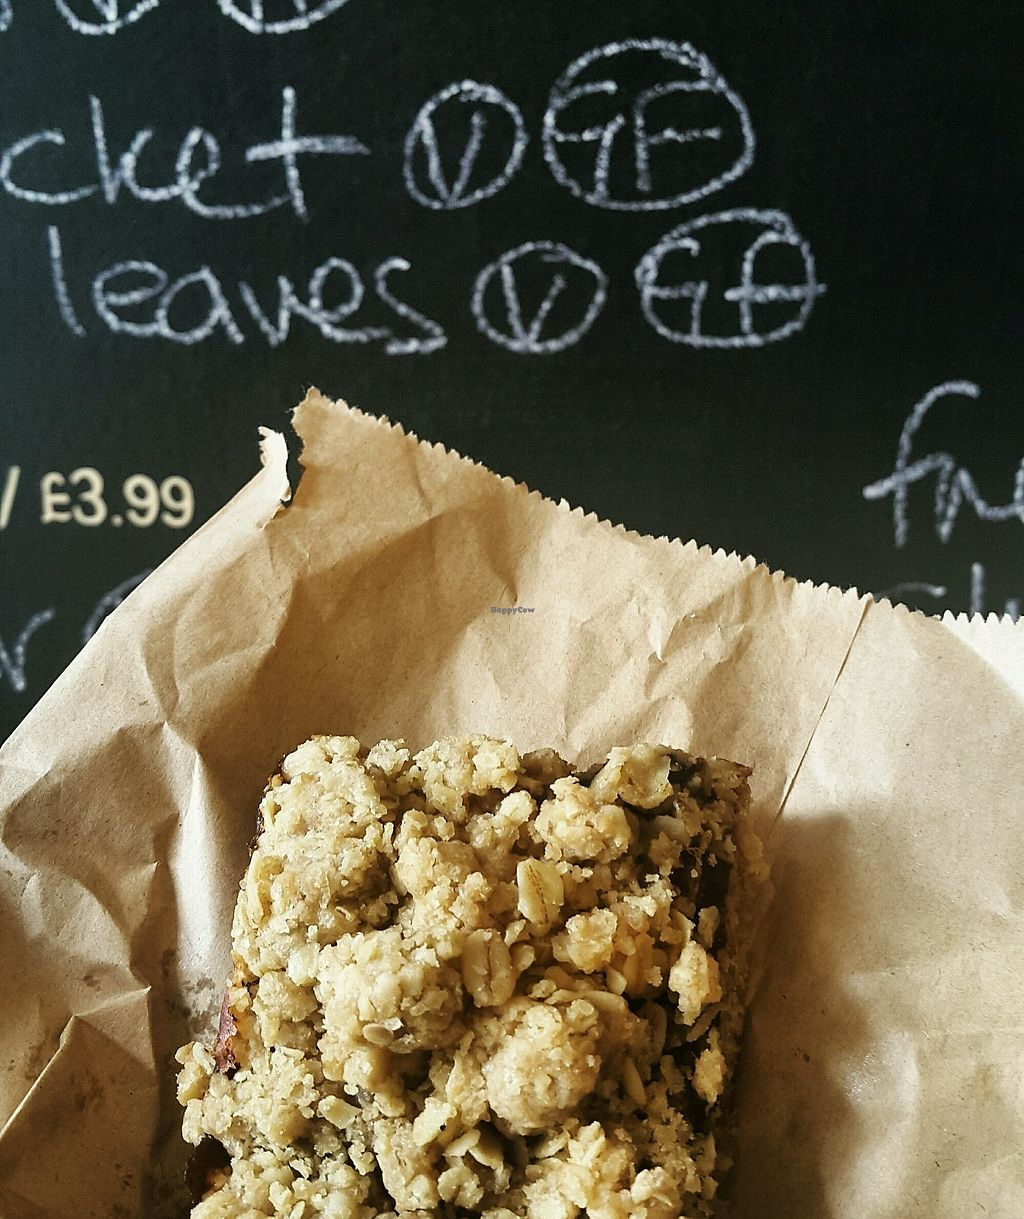 "Photo of The Good Earth  by <a href=""/members/profile/TomHester"">TomHester</a> <br/>Vegan date and oat slice <br/> October 22, 2017  - <a href='/contact/abuse/image/13621/317452'>Report</a>"